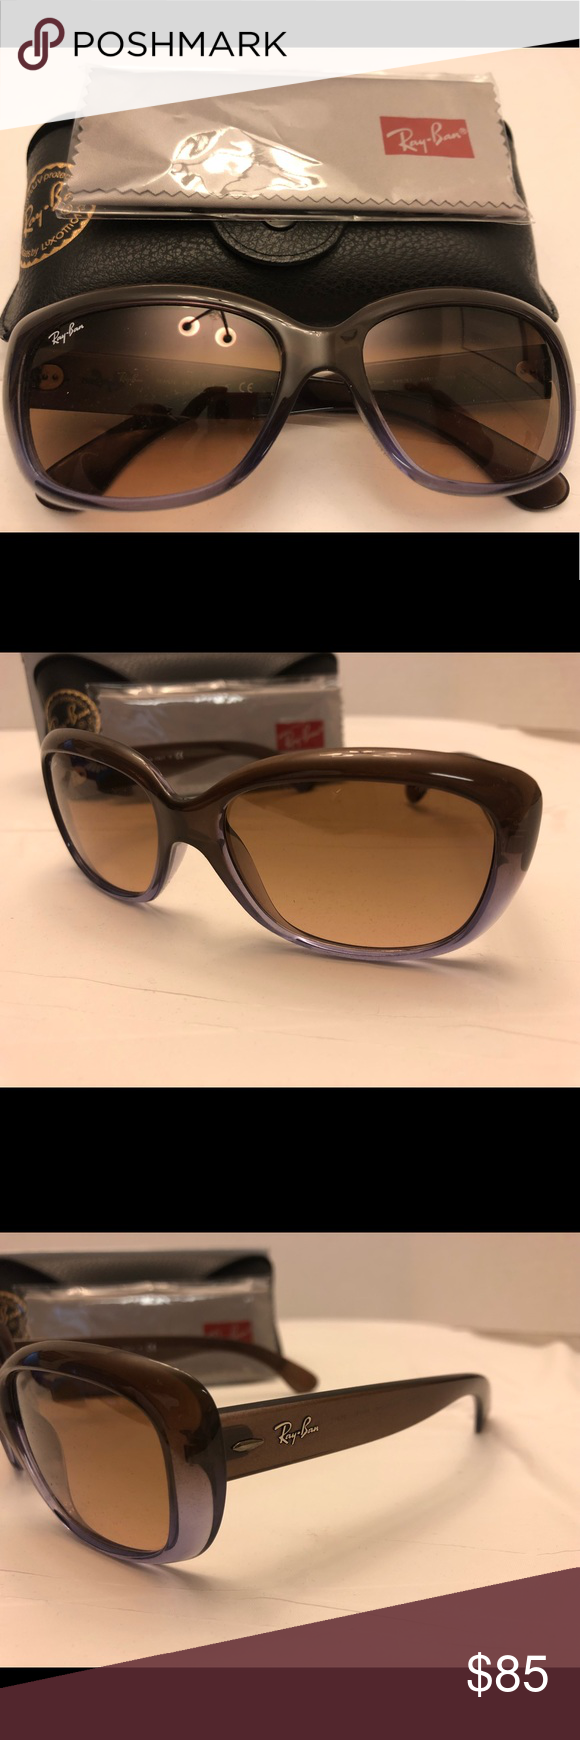 RayBan Jackie OHH Women s Sunglasses Ray Ban Jackie OHH women s sunglasses. Brand  New never worn with original case and cleaning cloth. 847aed22fdc8